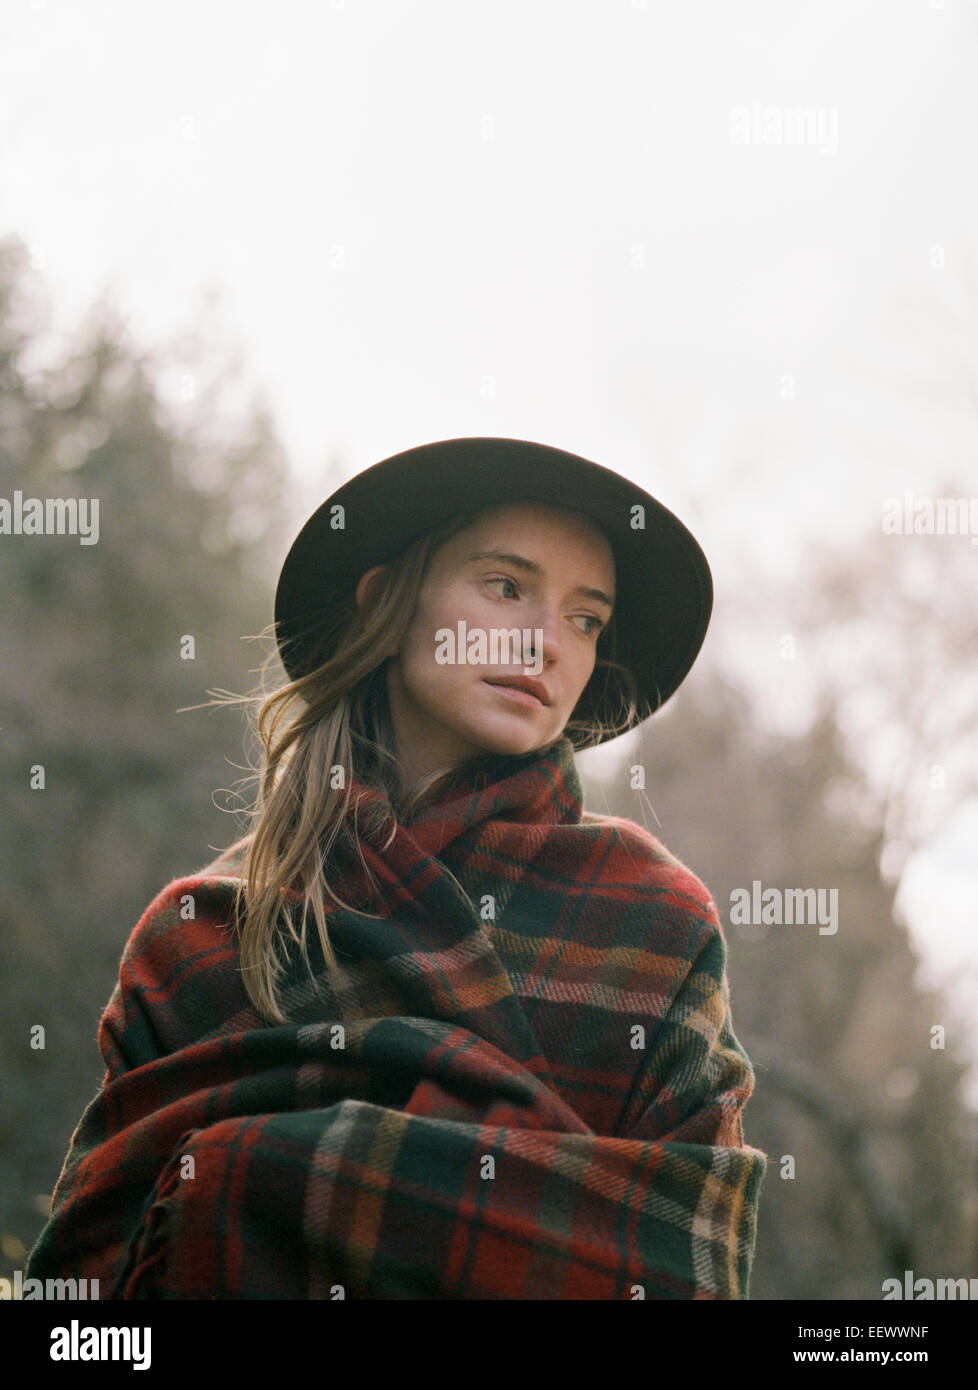 Young blond woman wearing a hat, wrapped in a blanket. - Stock Image